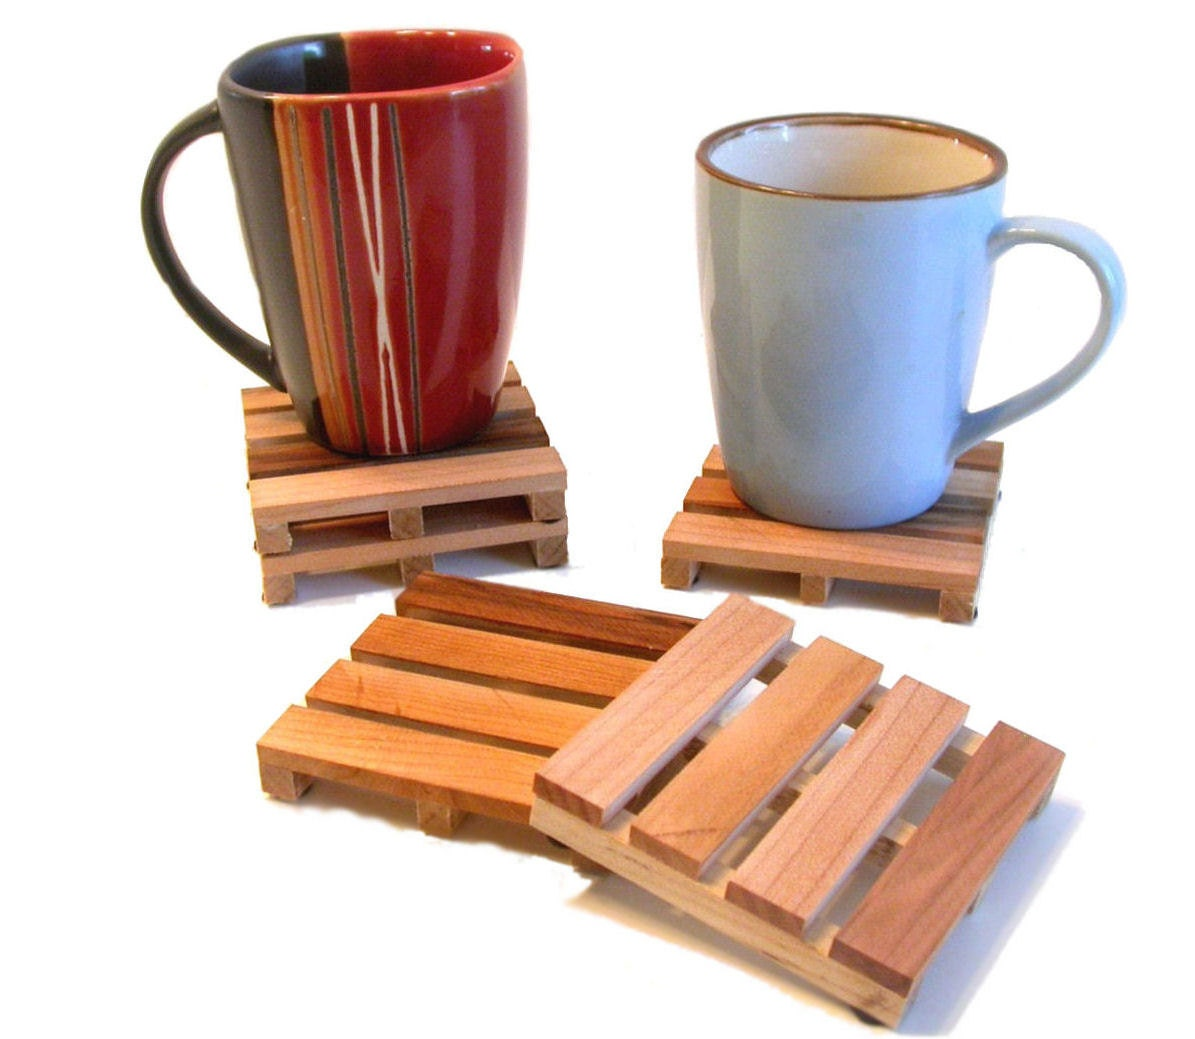 4 Coffee Coasters The Original Drink Coasters By